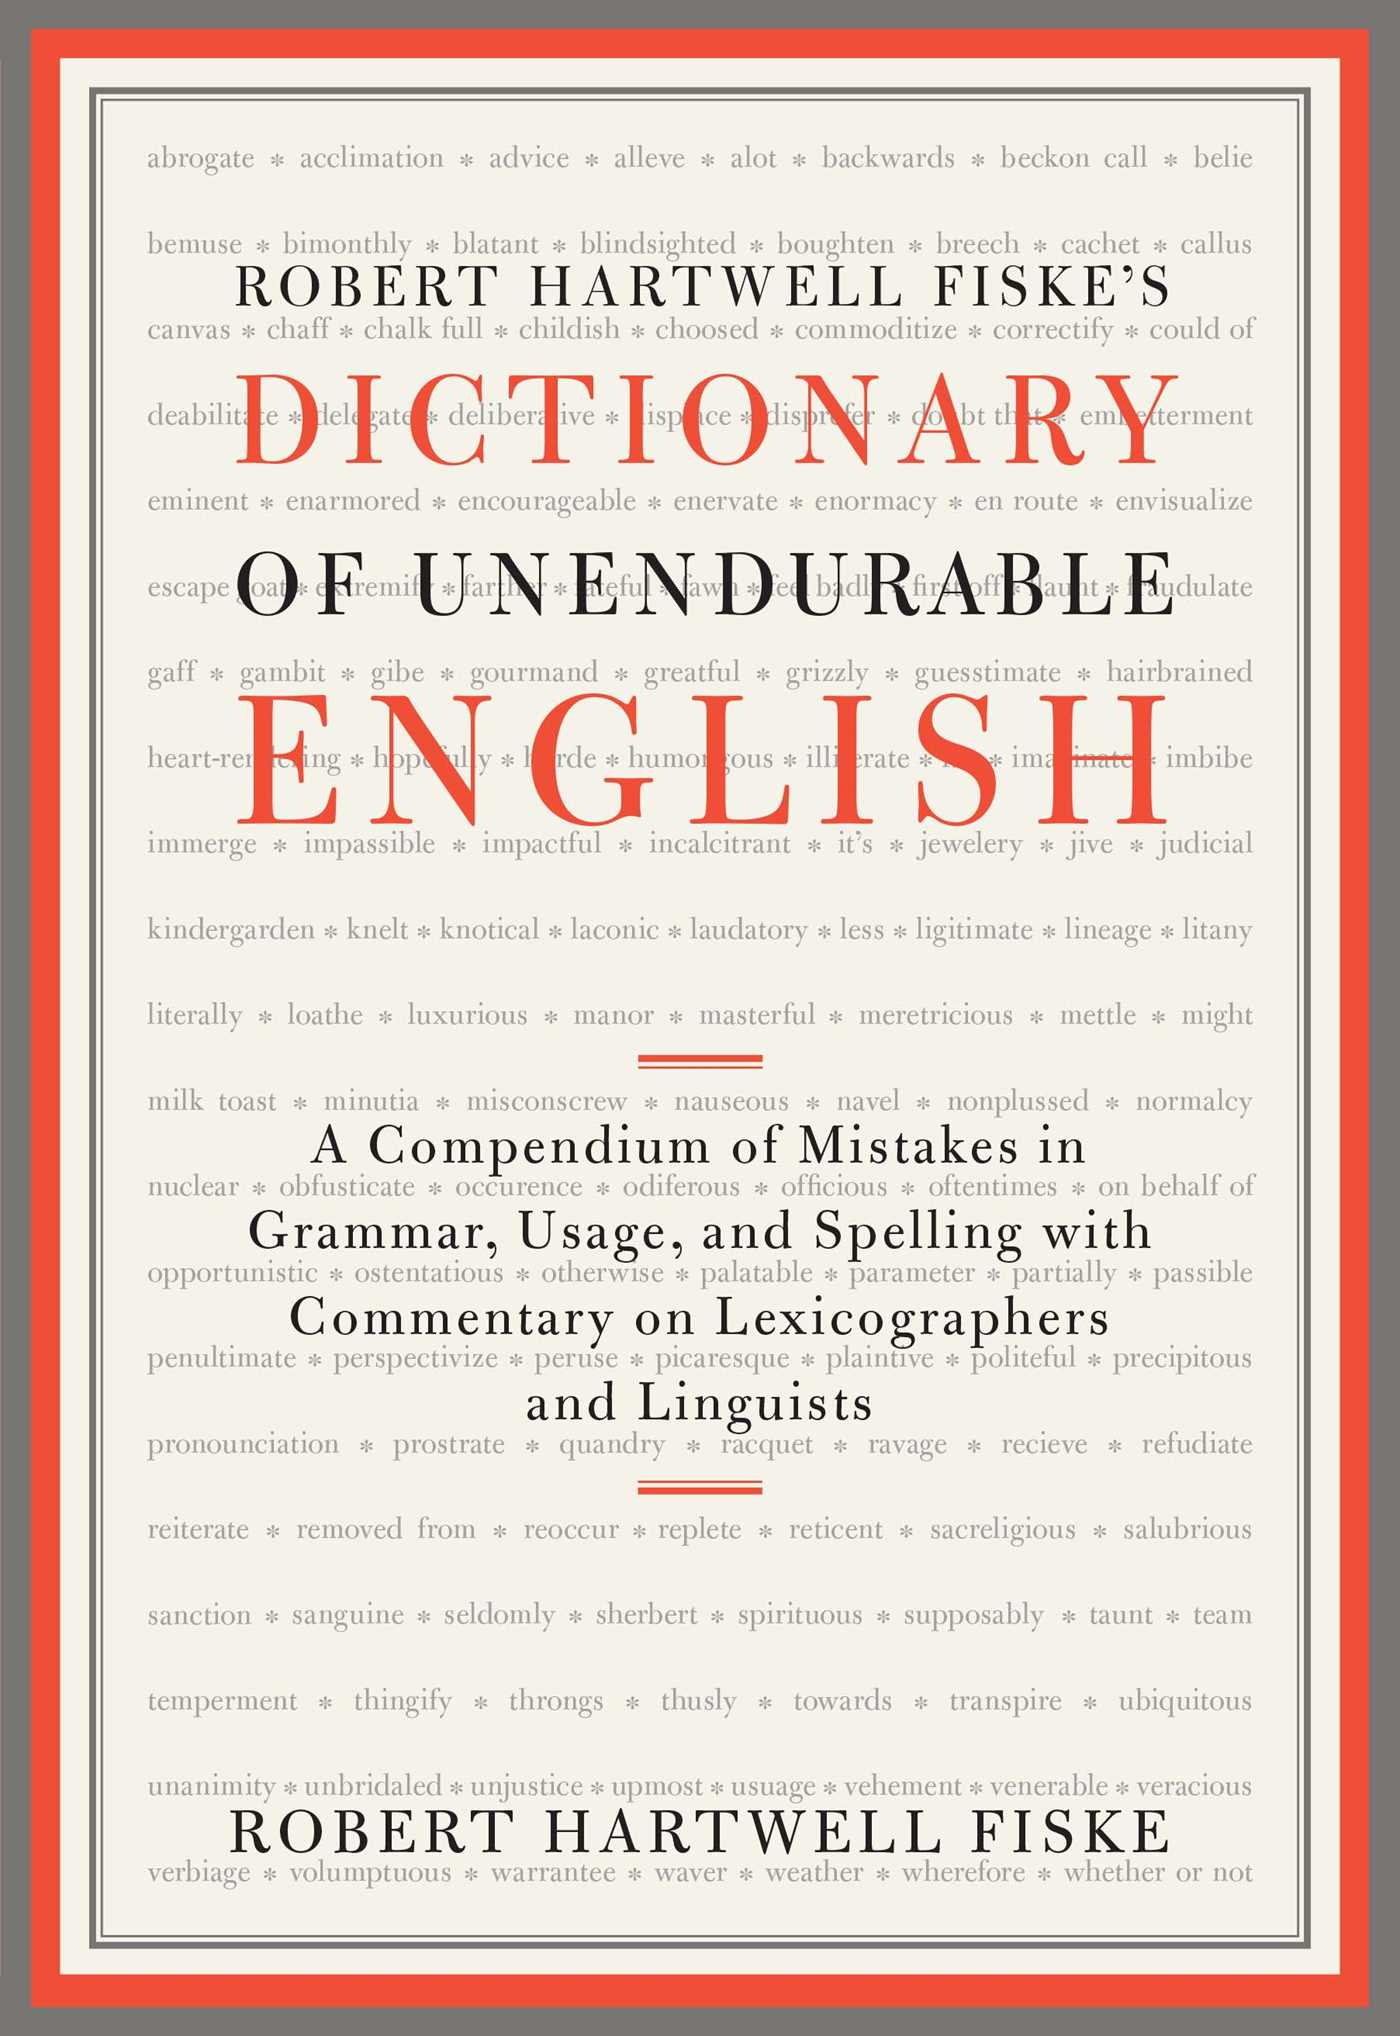 Robert hartwell fiskes dictionary of unendurable english 9781451651348 hr